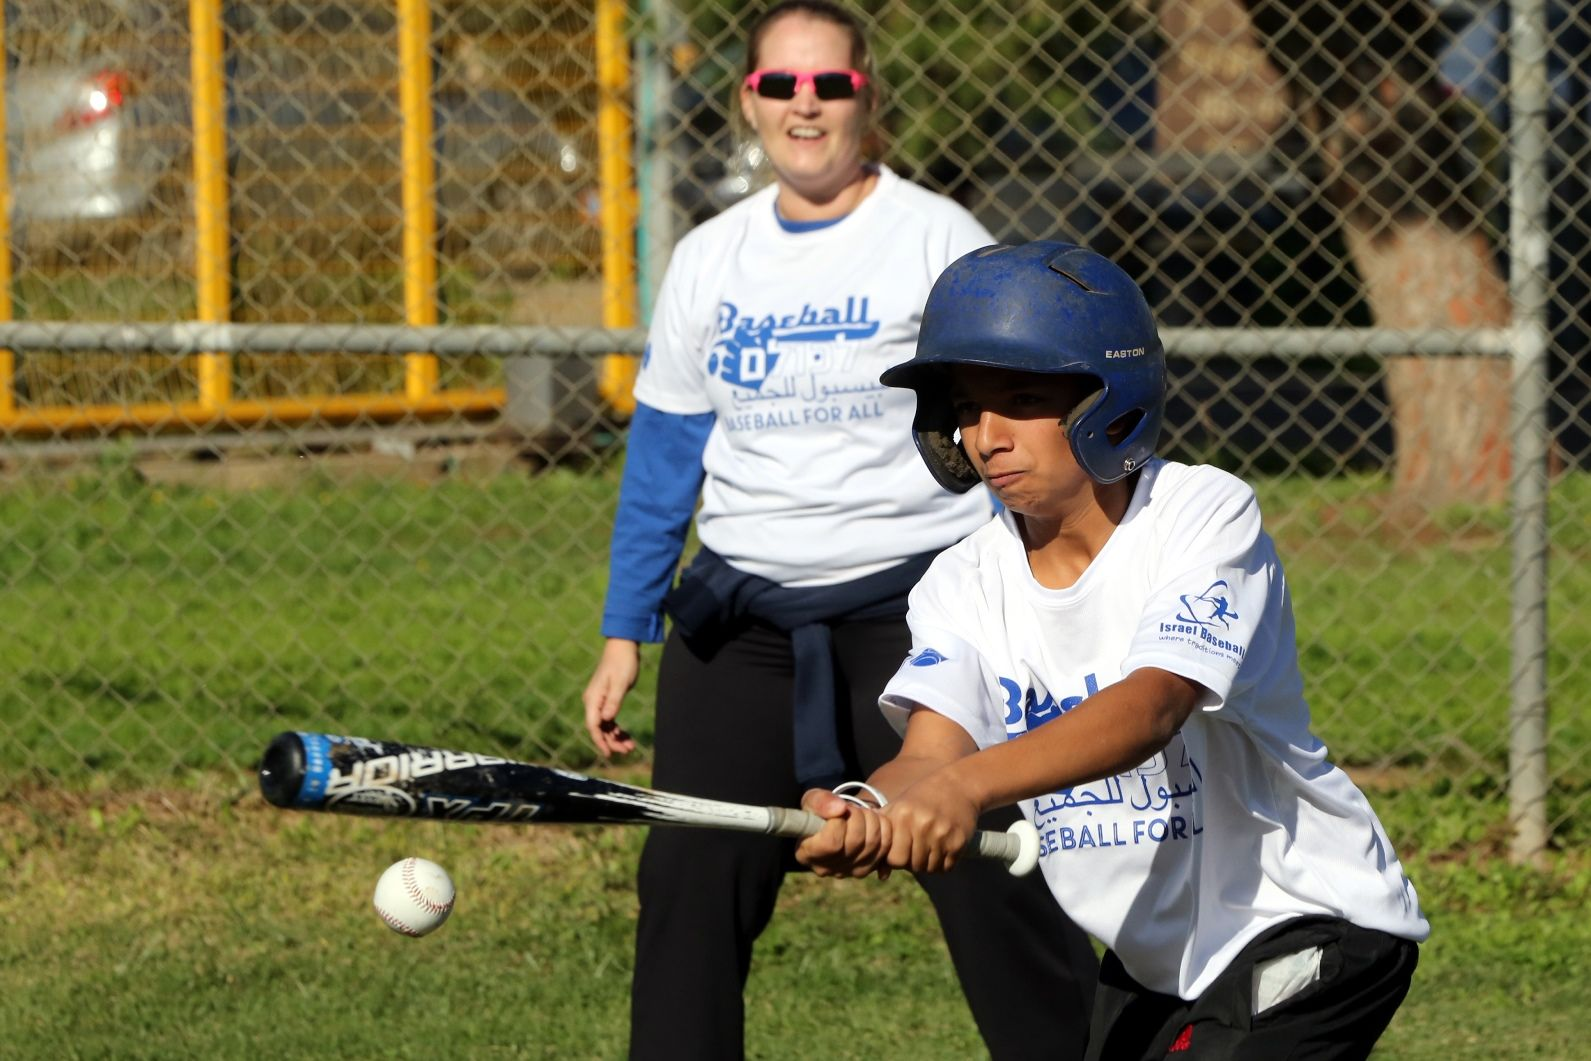 Girls' turn at bat, with Baseball for All official Callie Caughron looking on. Photo by Yossi Zamir/JNF